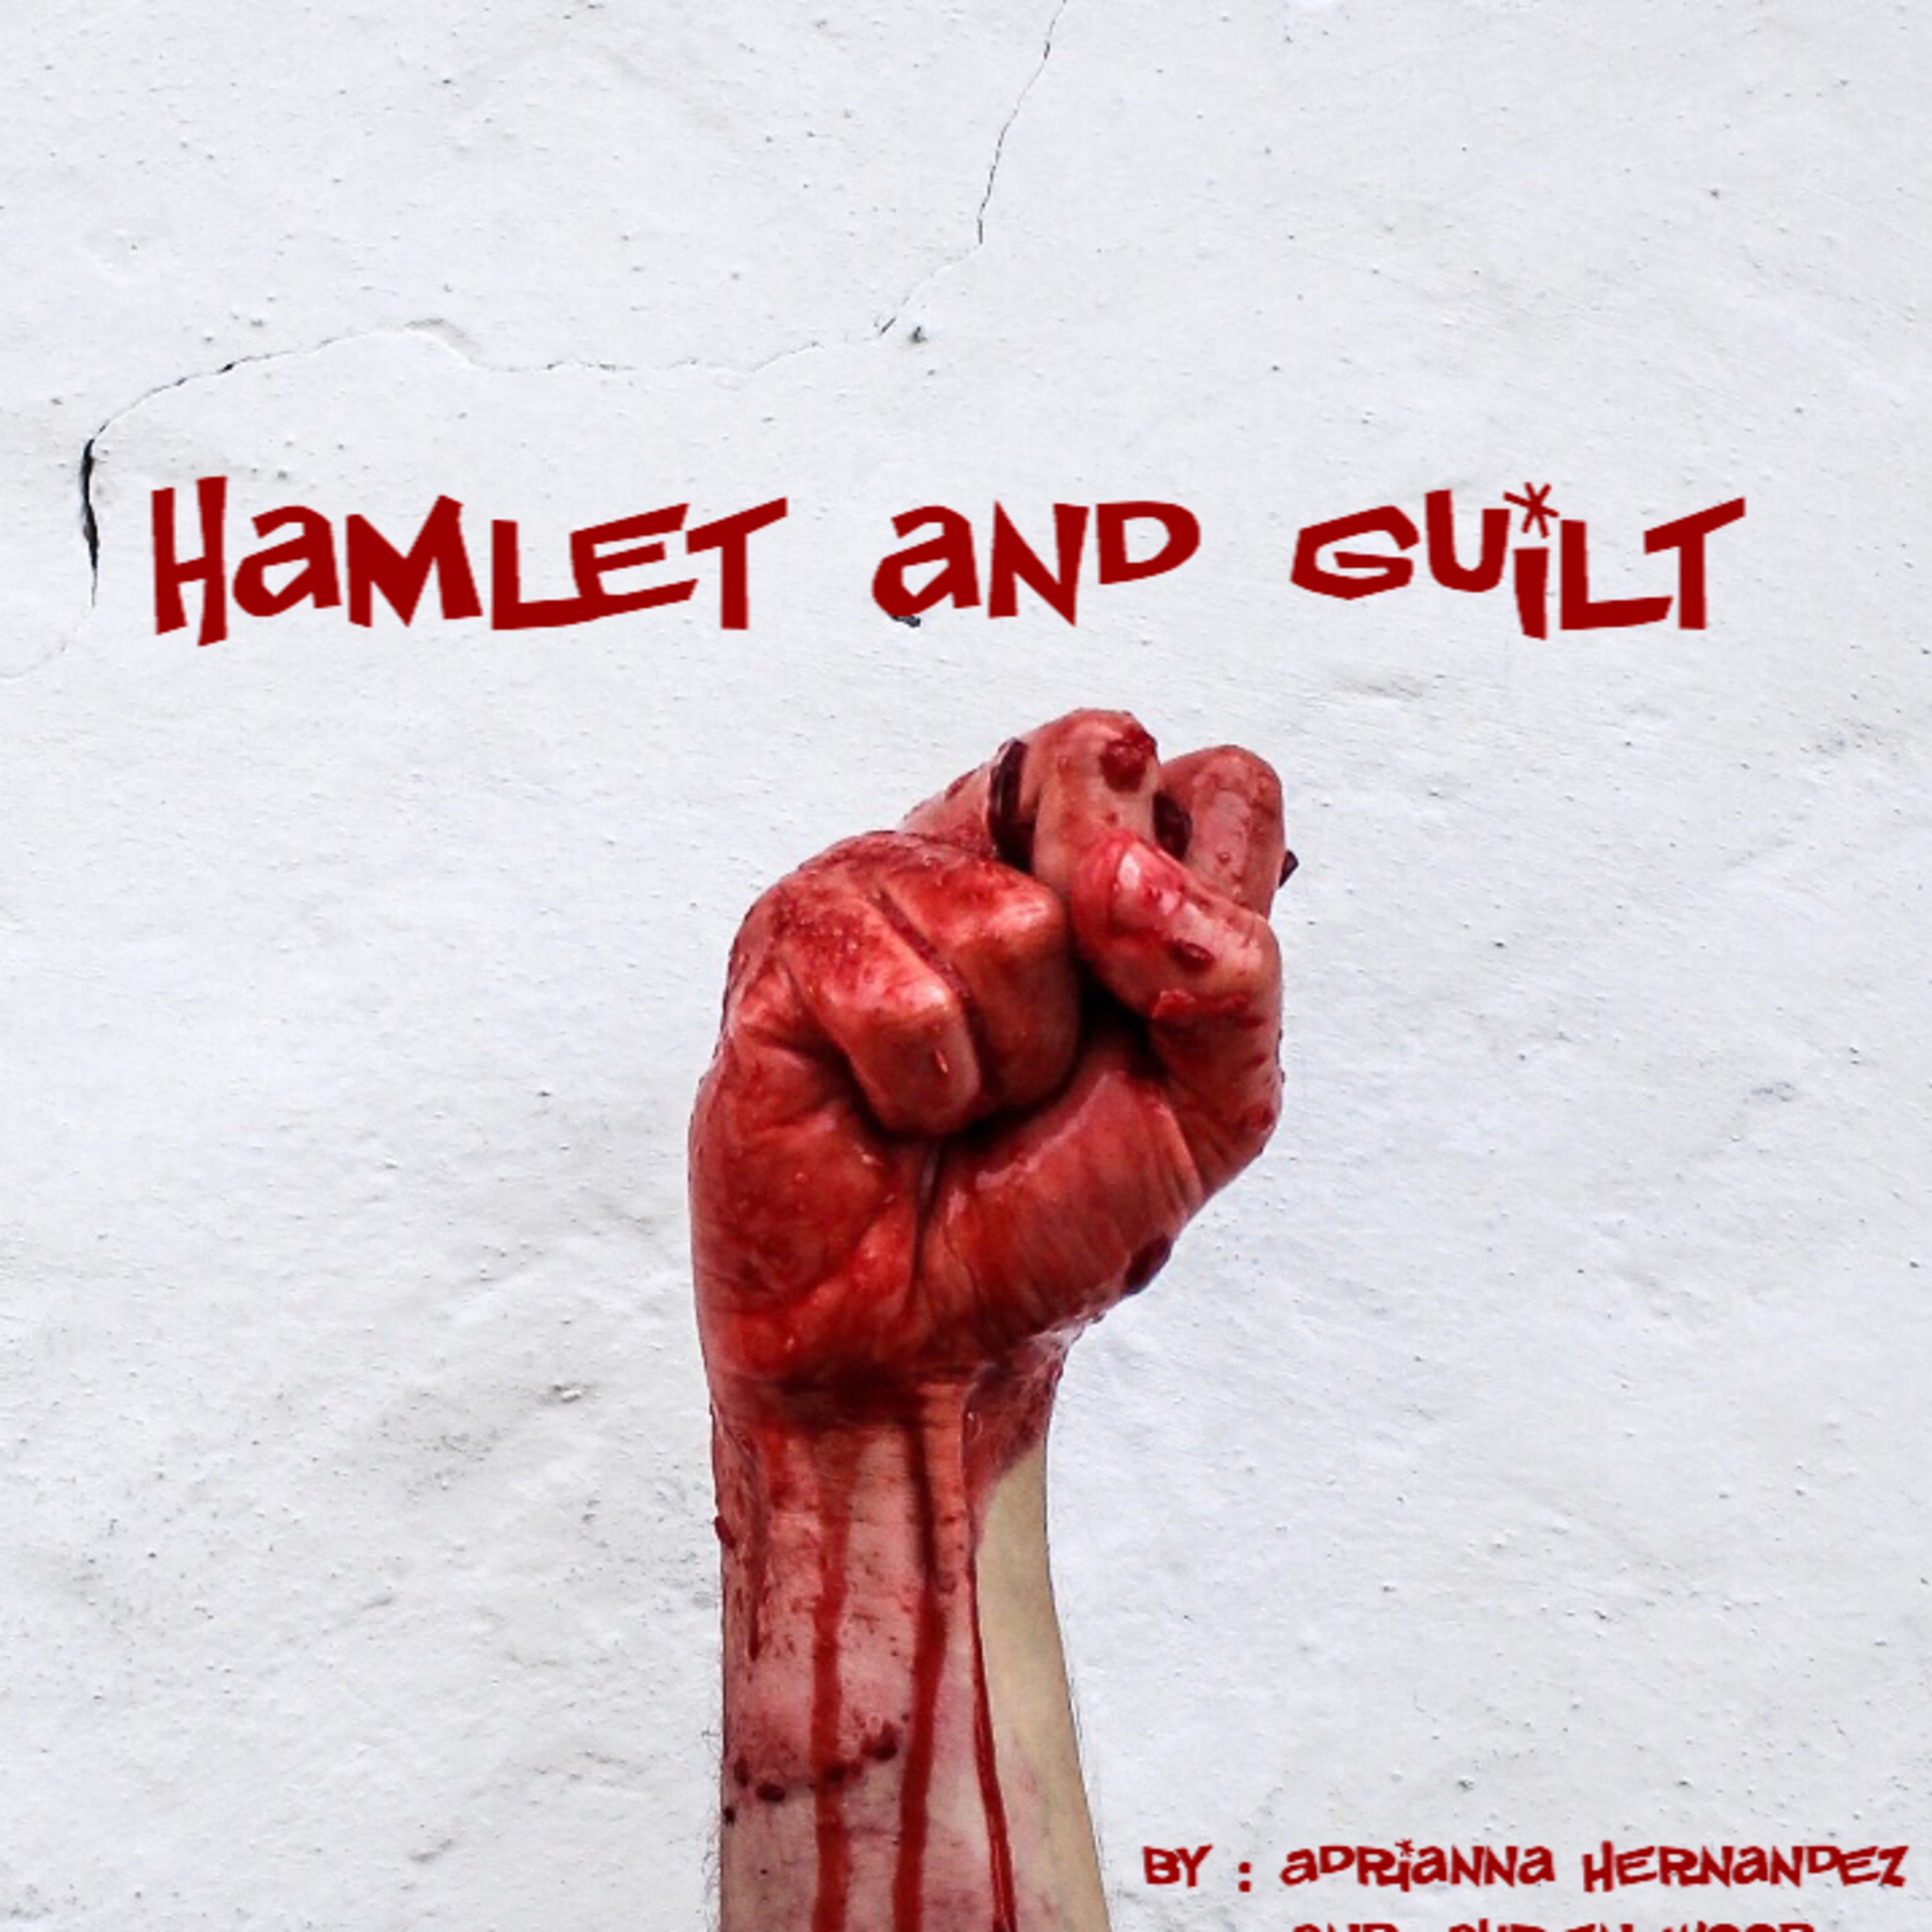 hamlet and how guilt ties in with the characters in the play.